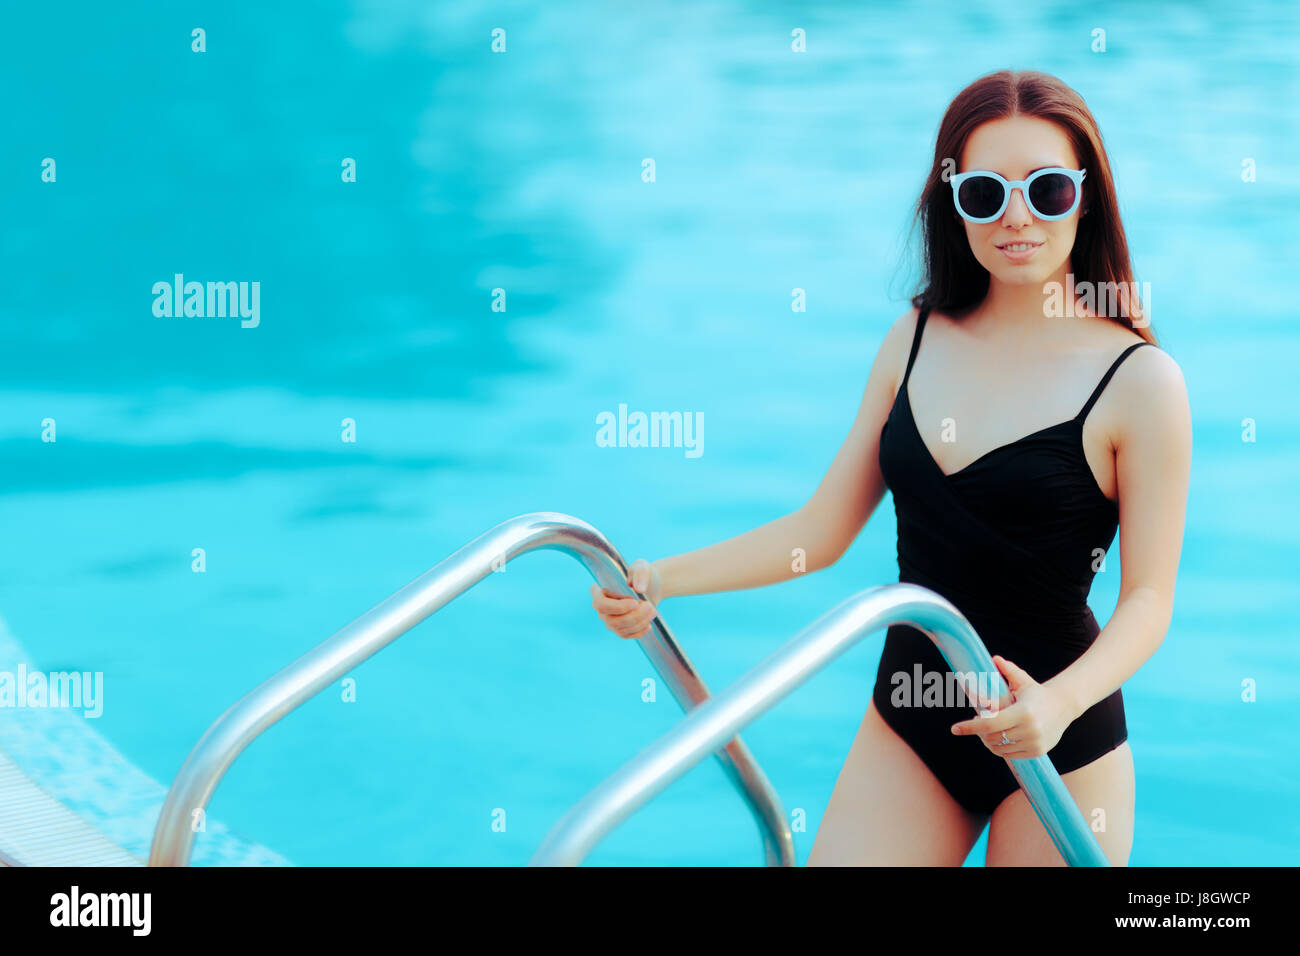 f273974af5 Summer Girl with Fashion Sunglasses and Black Swimsuit by the Pool - Stock  Image